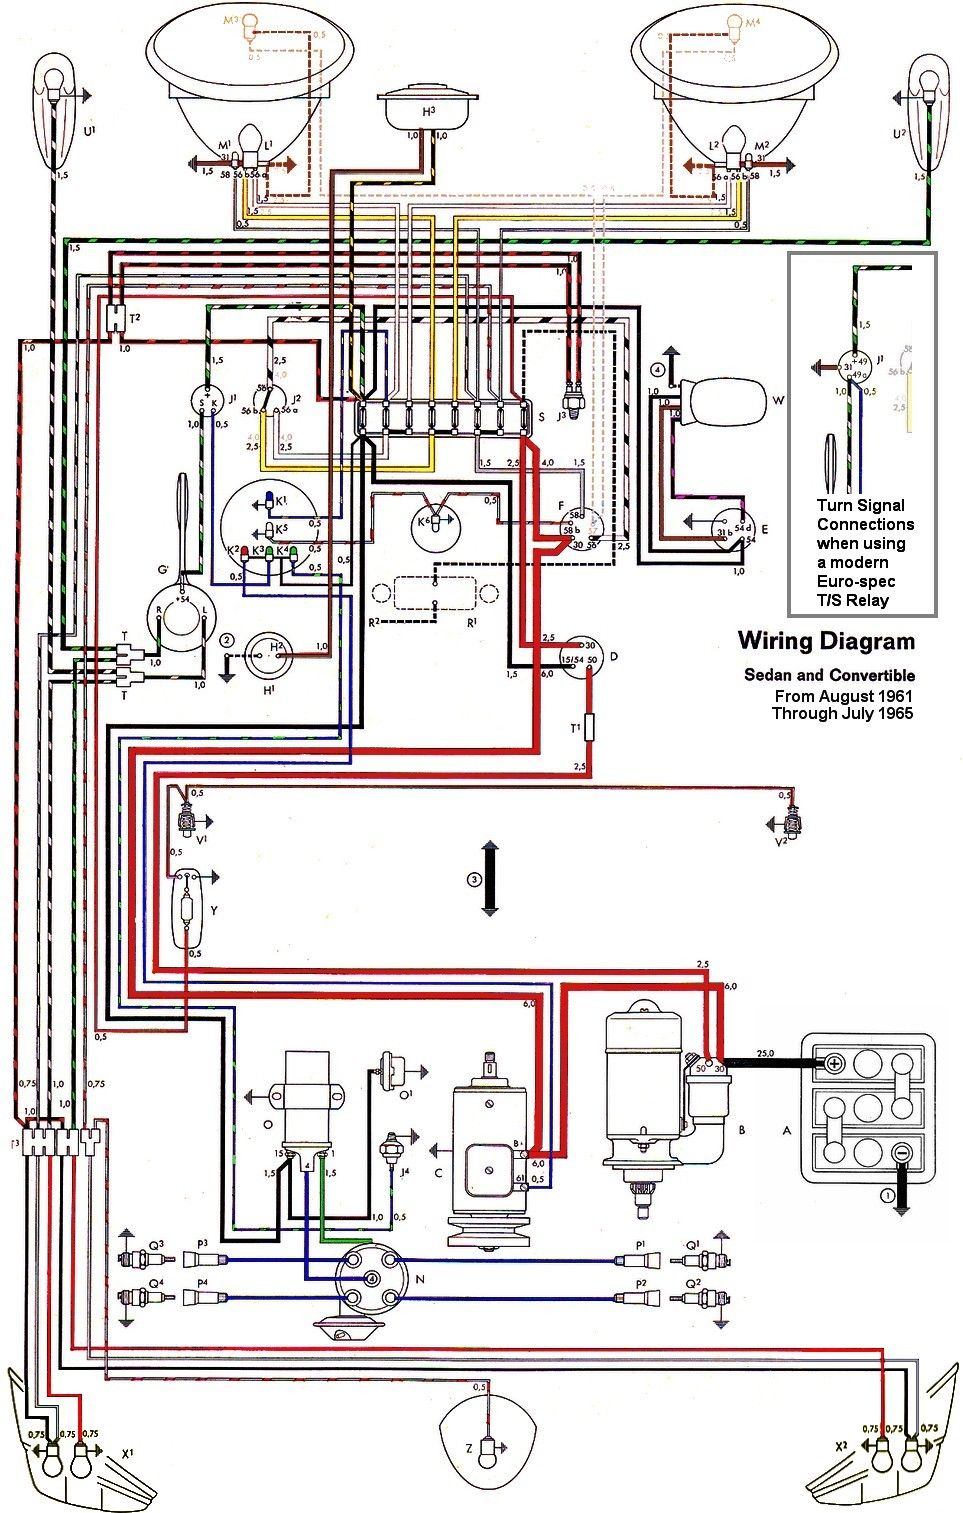 wiring diagram vw beetle sedan and convertible 1961 1965 vw vw vw bug starter relay wiring [ 963 x 1513 Pixel ]